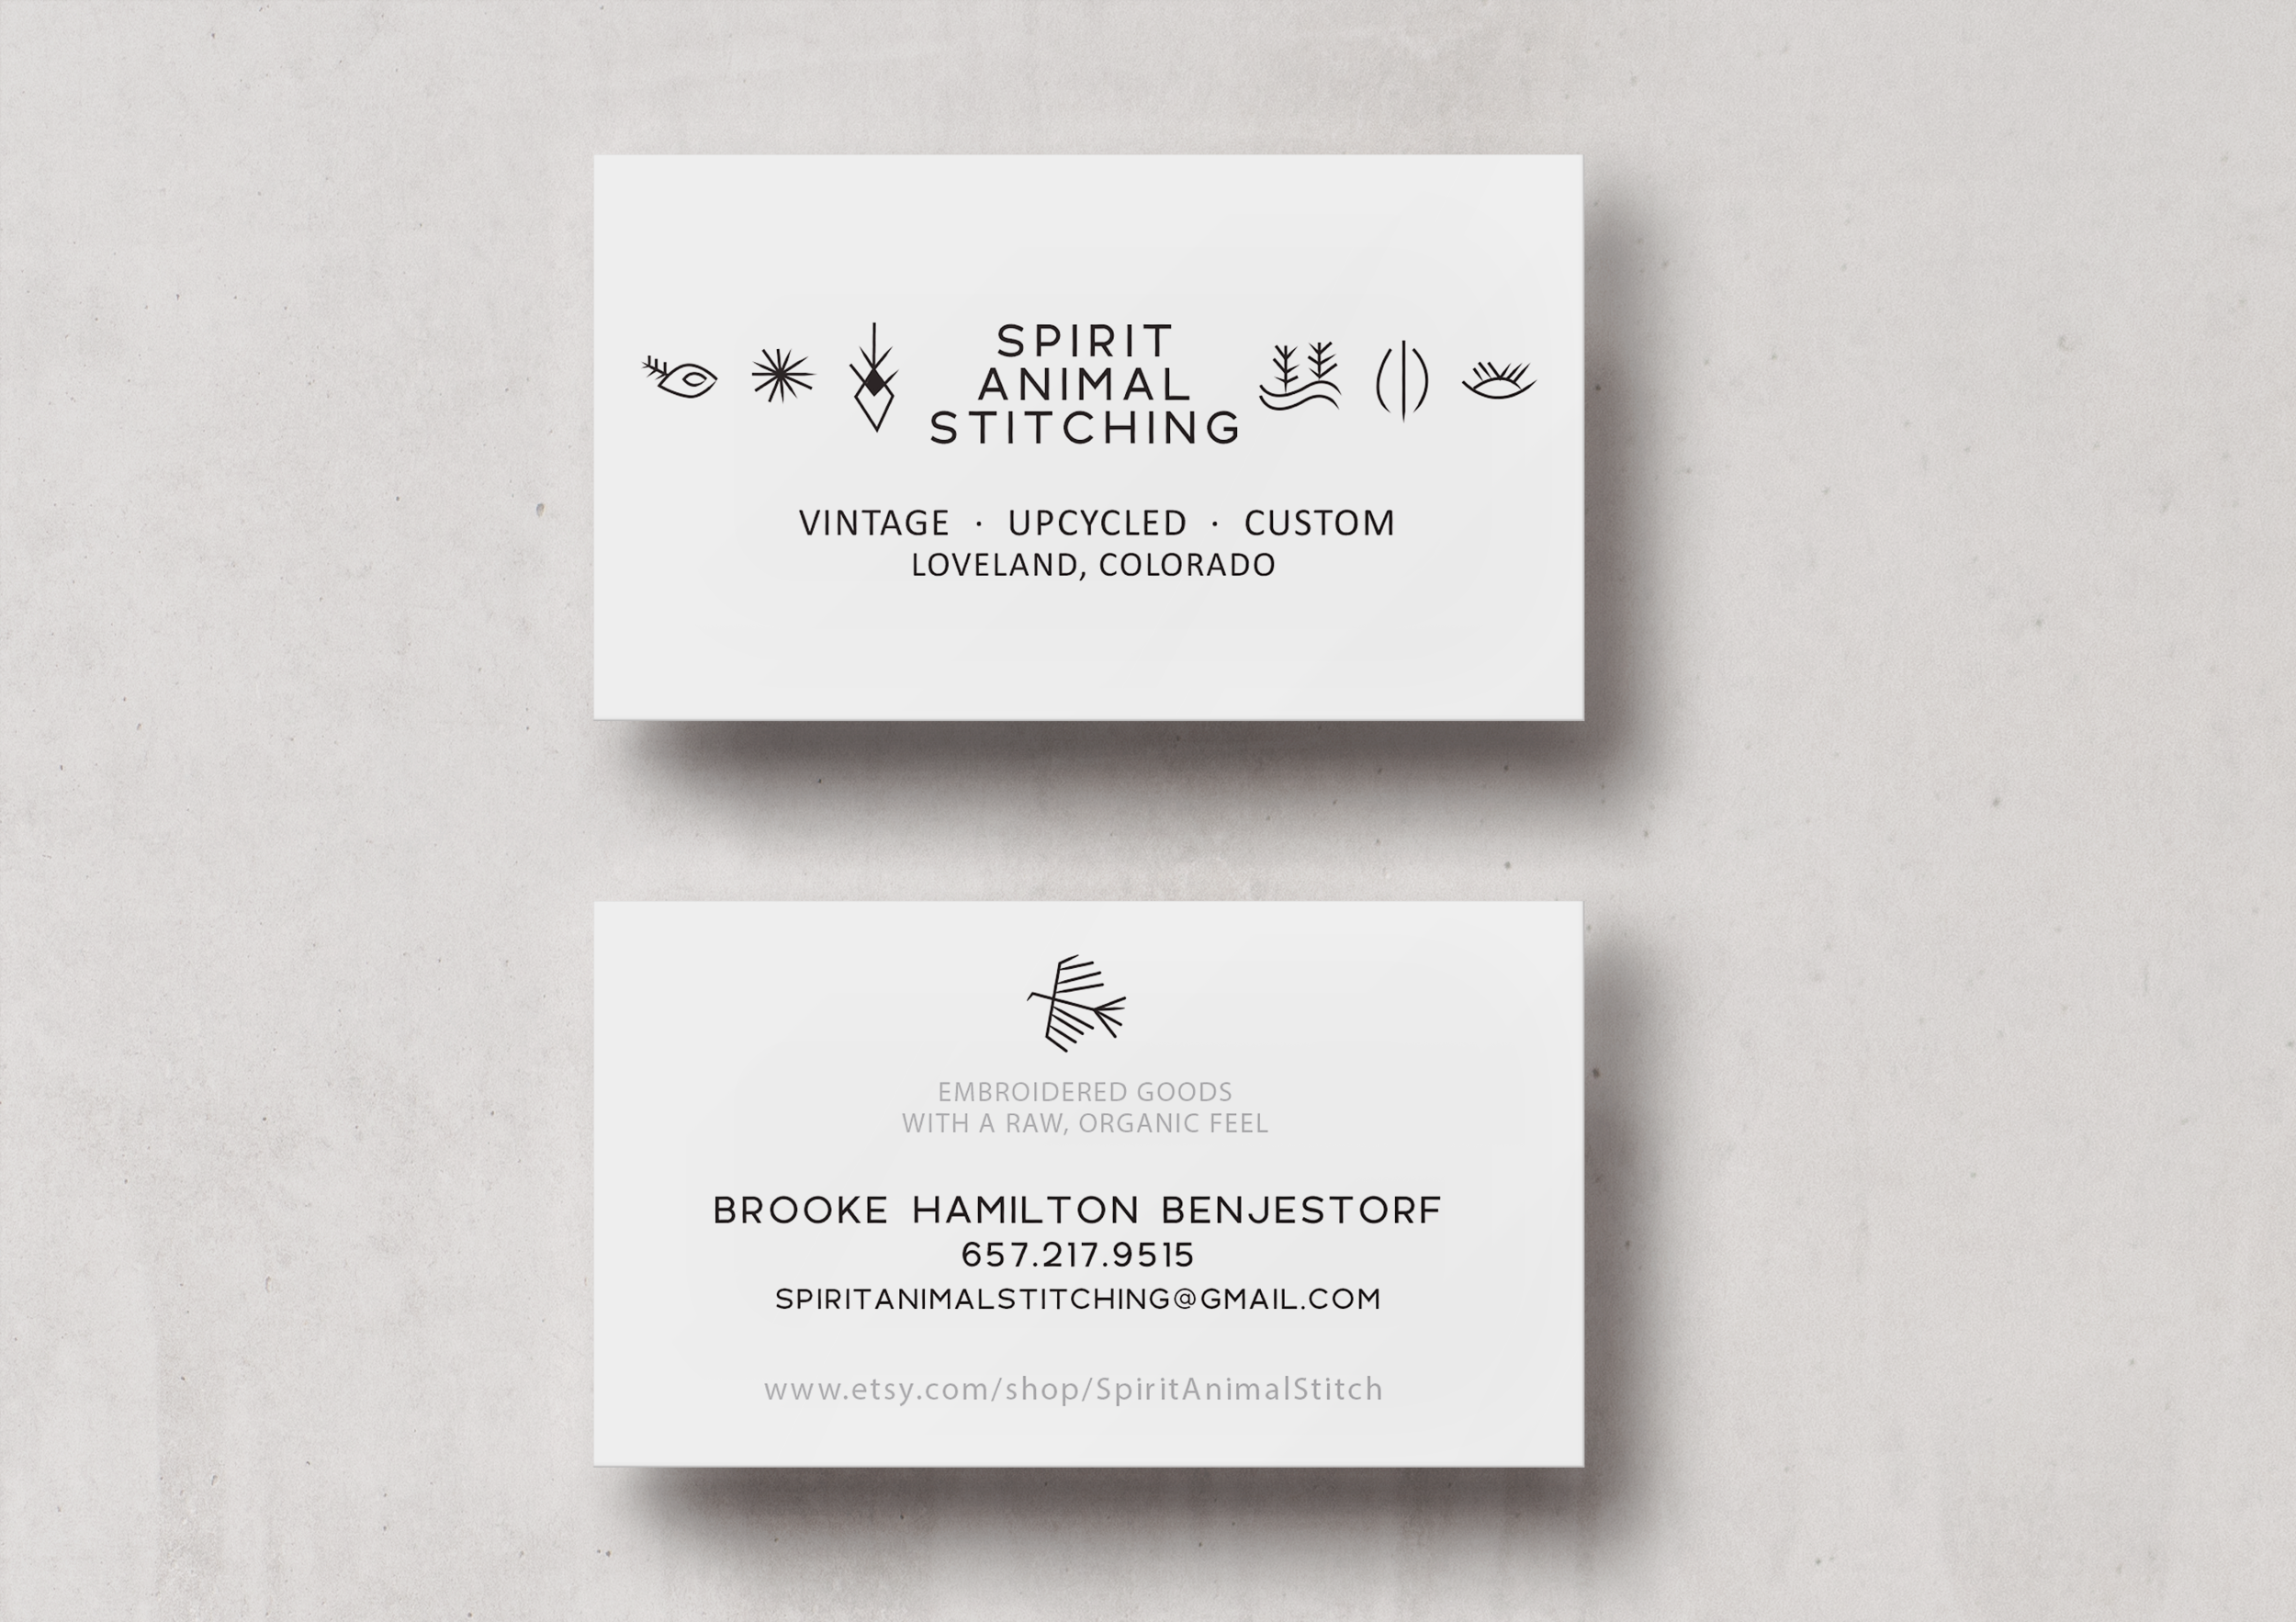 Spirit Animal Stitching Business Card Design